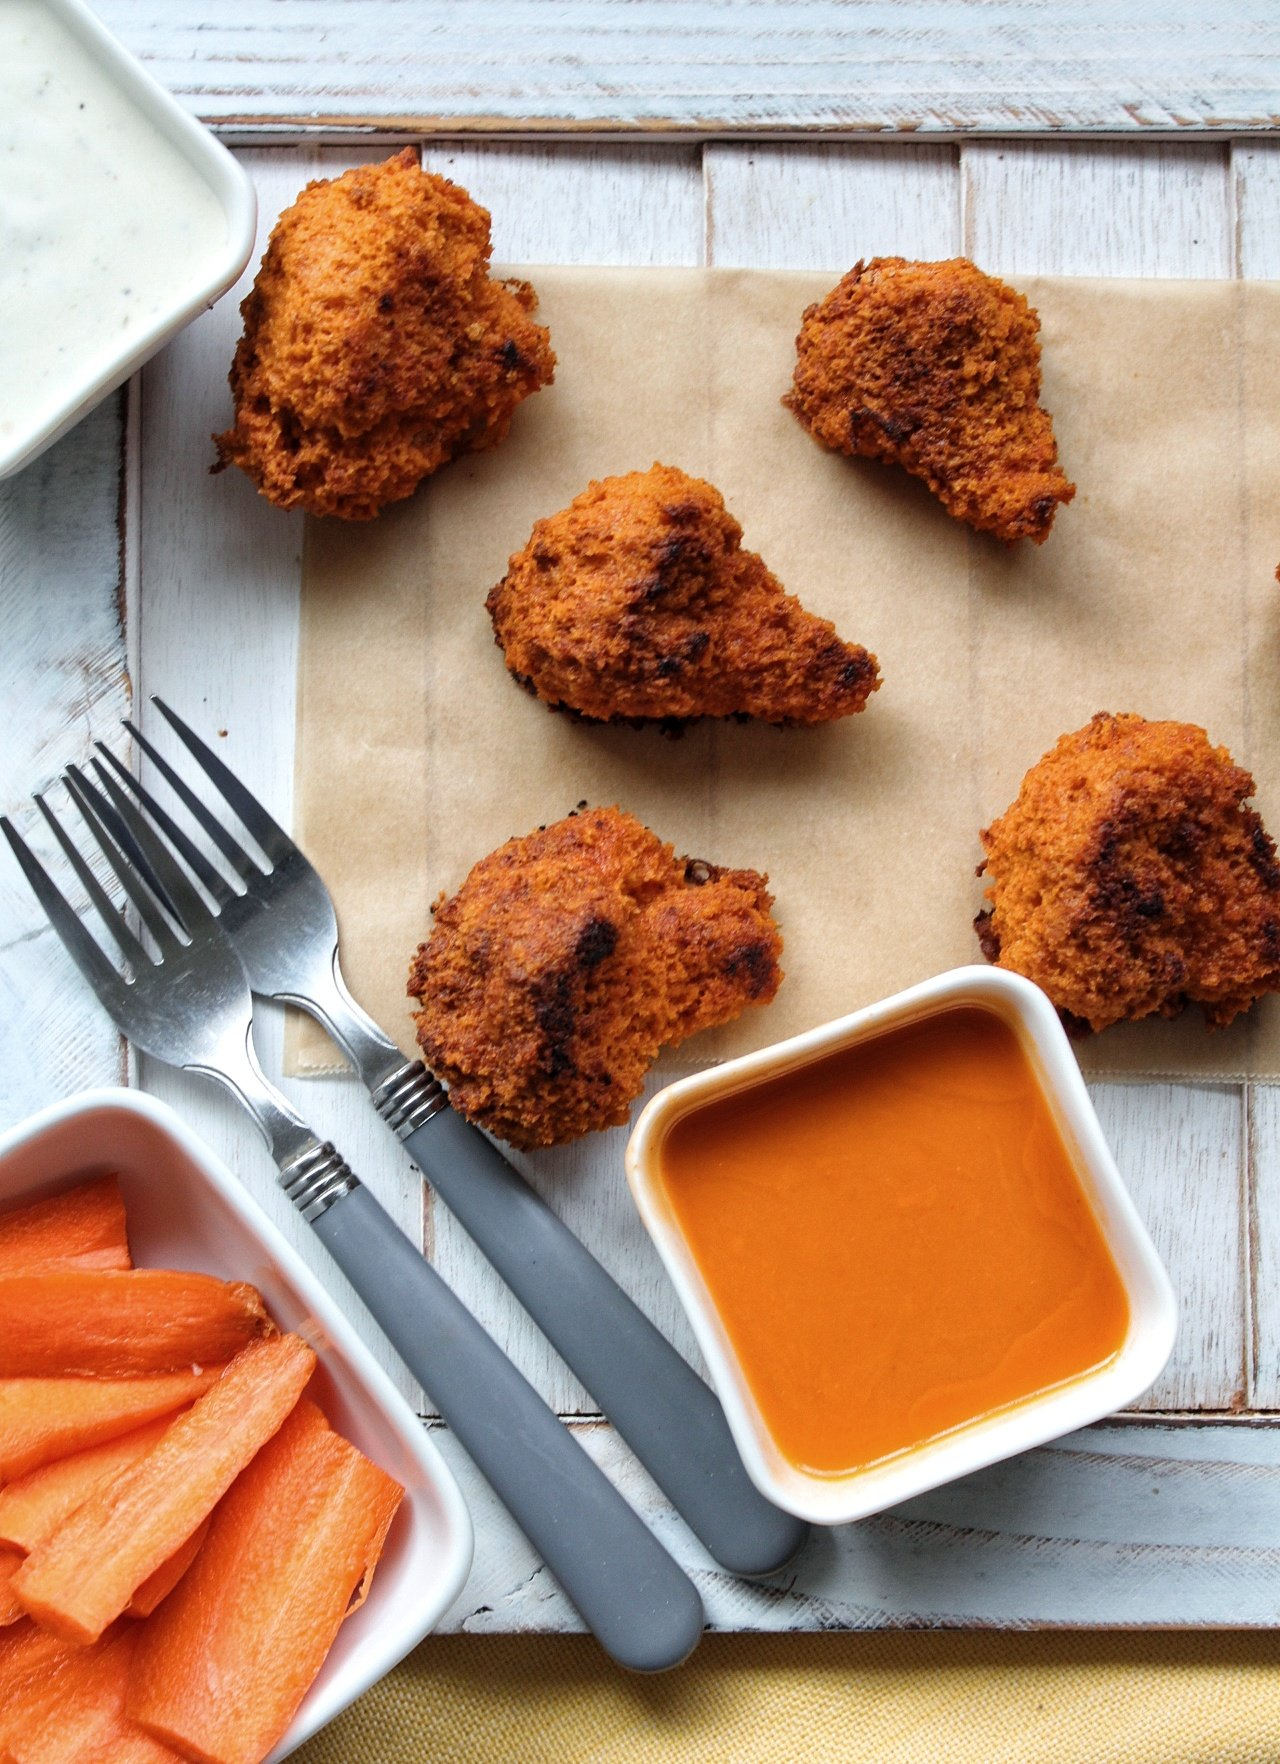 buffalo cauliflower wings with sauce and carrots